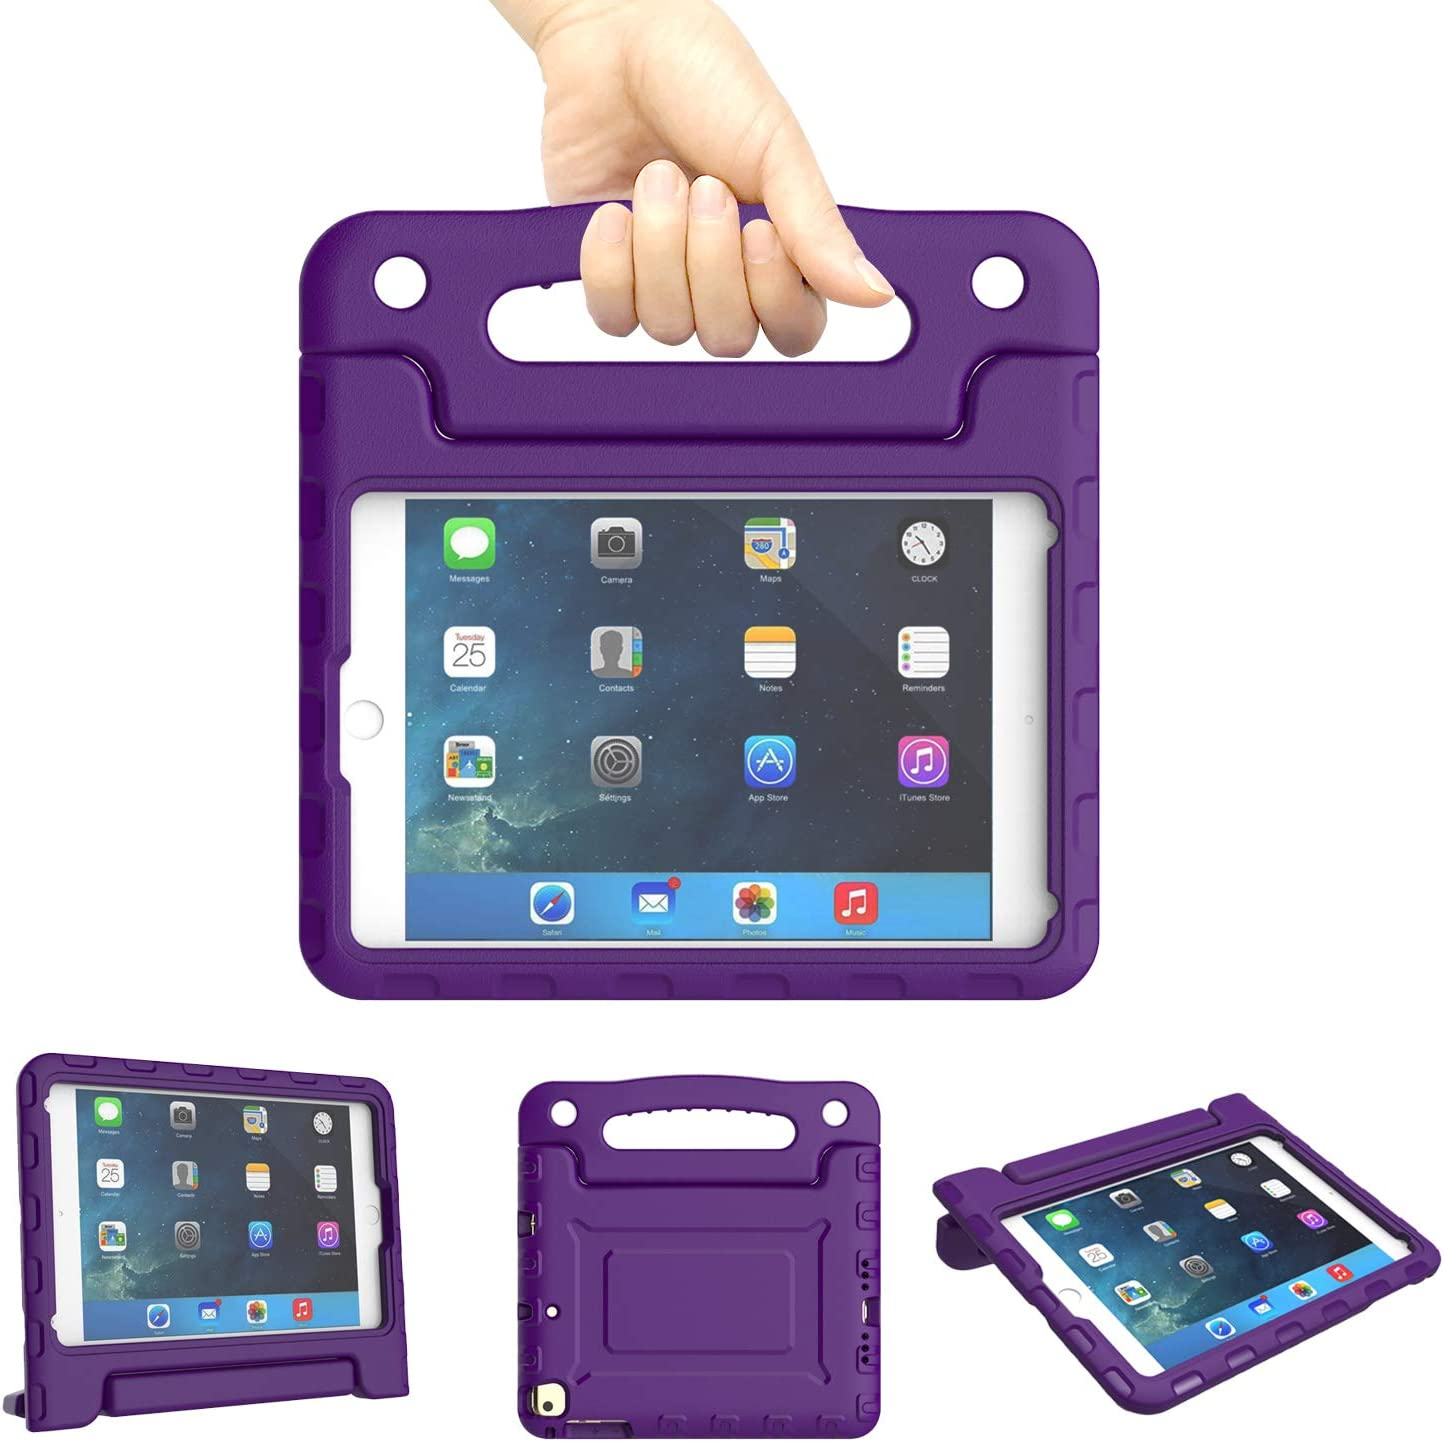 Kids Case for iPad Mini 1 2 3 4 5 Generation - Lightweight Shockproof Convertible Protection Cover with Built-in Handle Stand Children Tablet and 2019 - Retina Display (Purple)